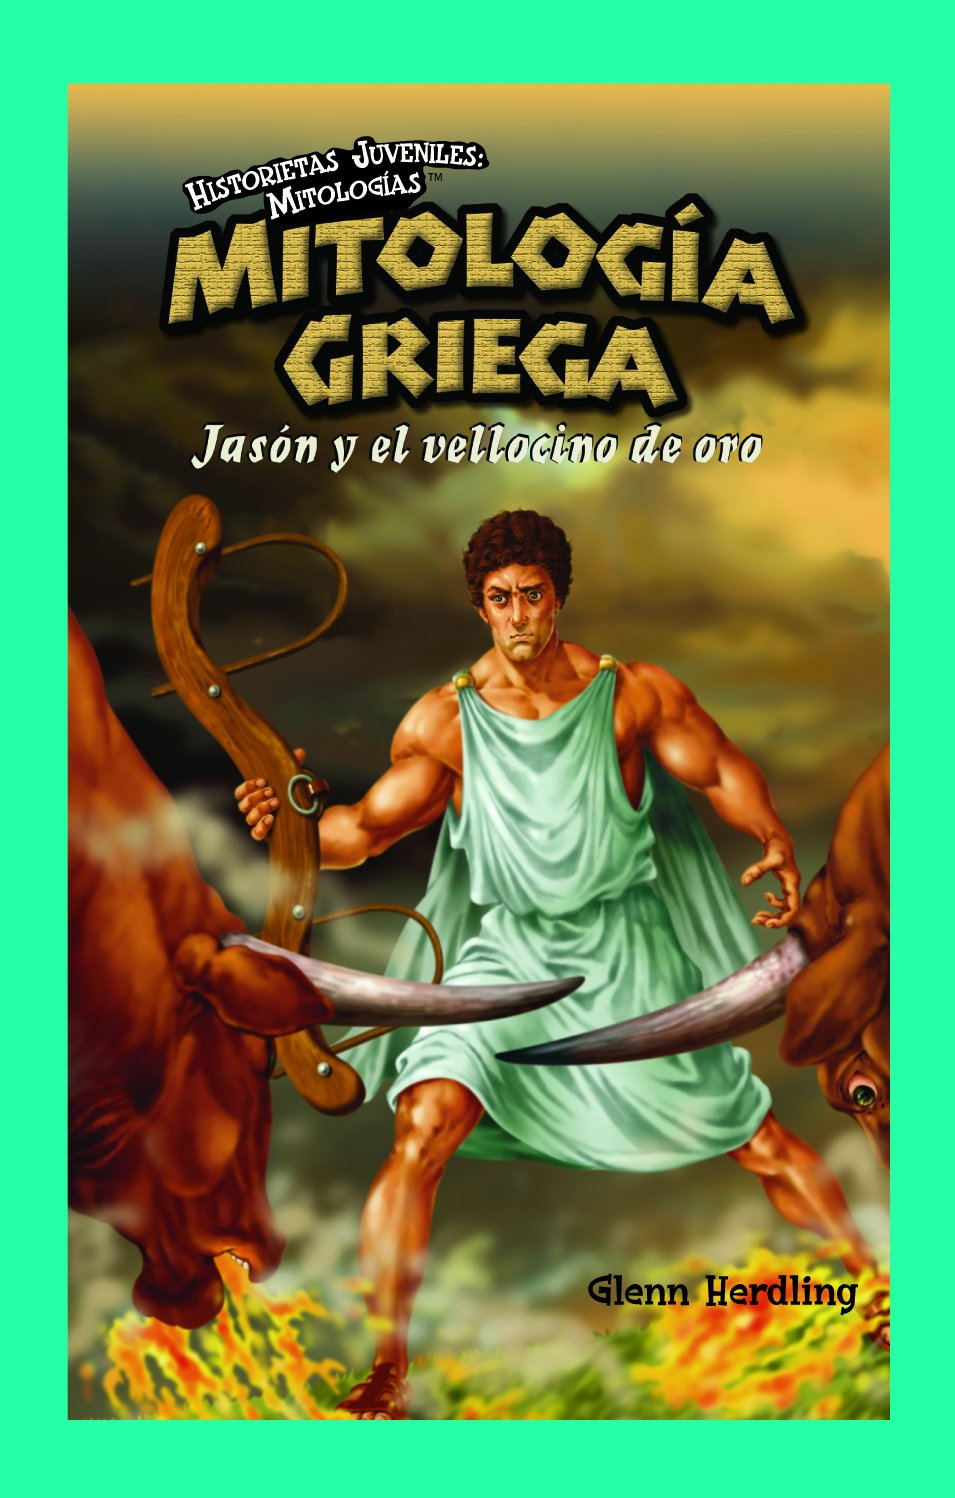 Mitologia griega/ Greek Mythology: Jason Y el vellocino de oro/ Jason and the Golden Fleece (Historietas Juveniles: Mitologias/ Jr. Graphic Mythologies) ...